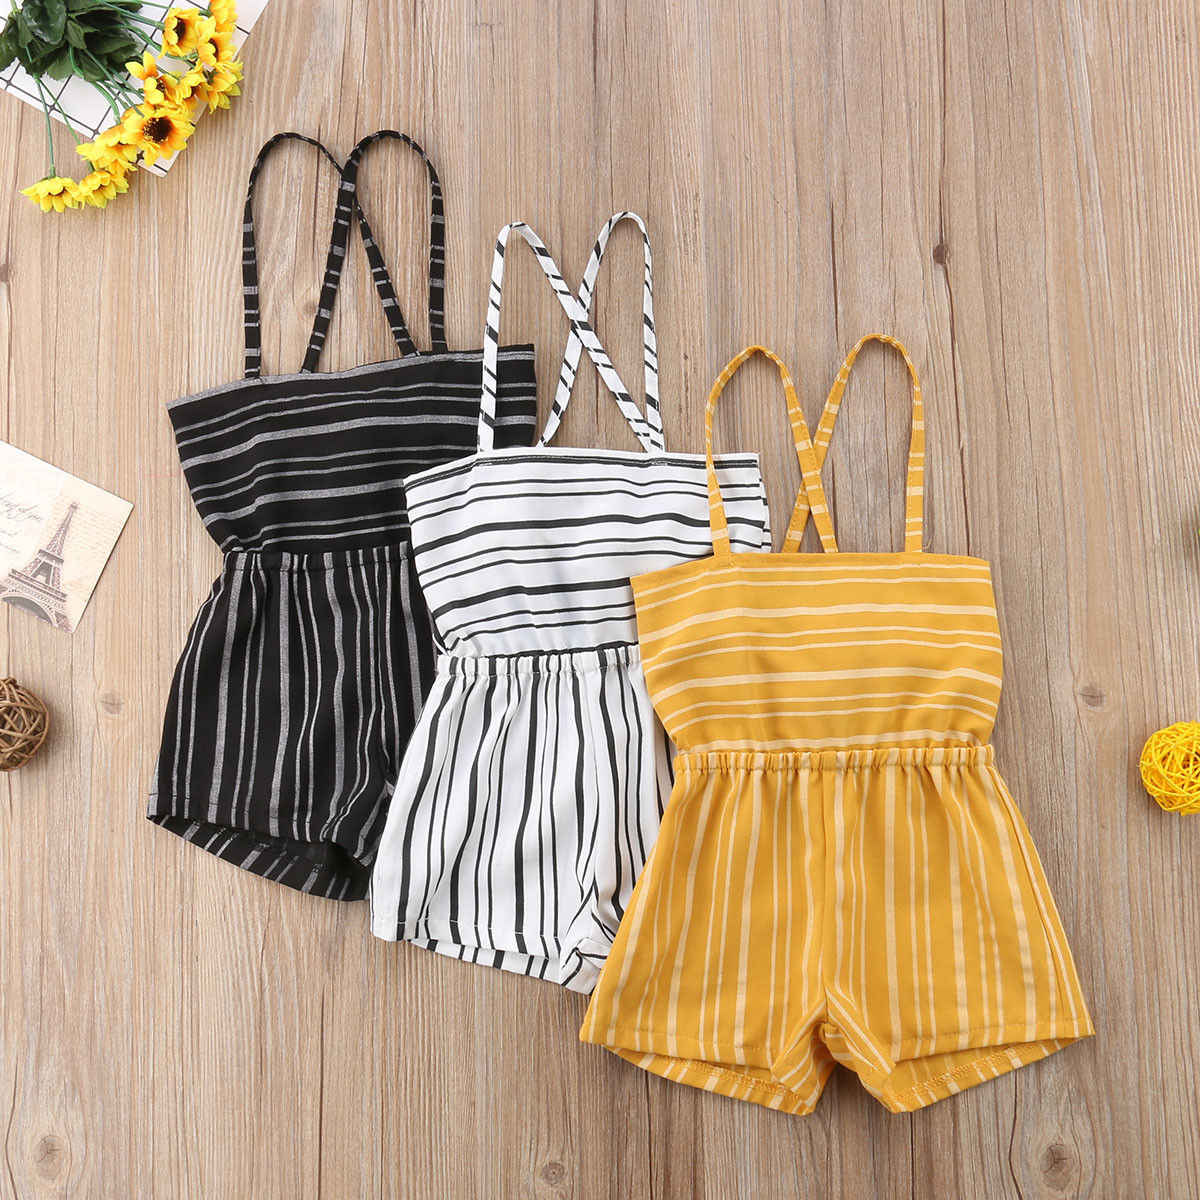 2a2fb2375a90 Pudcoco Summer Toddler Kids Baby Girls Off Shoulder Jumpsuits Playsuit  Shorts